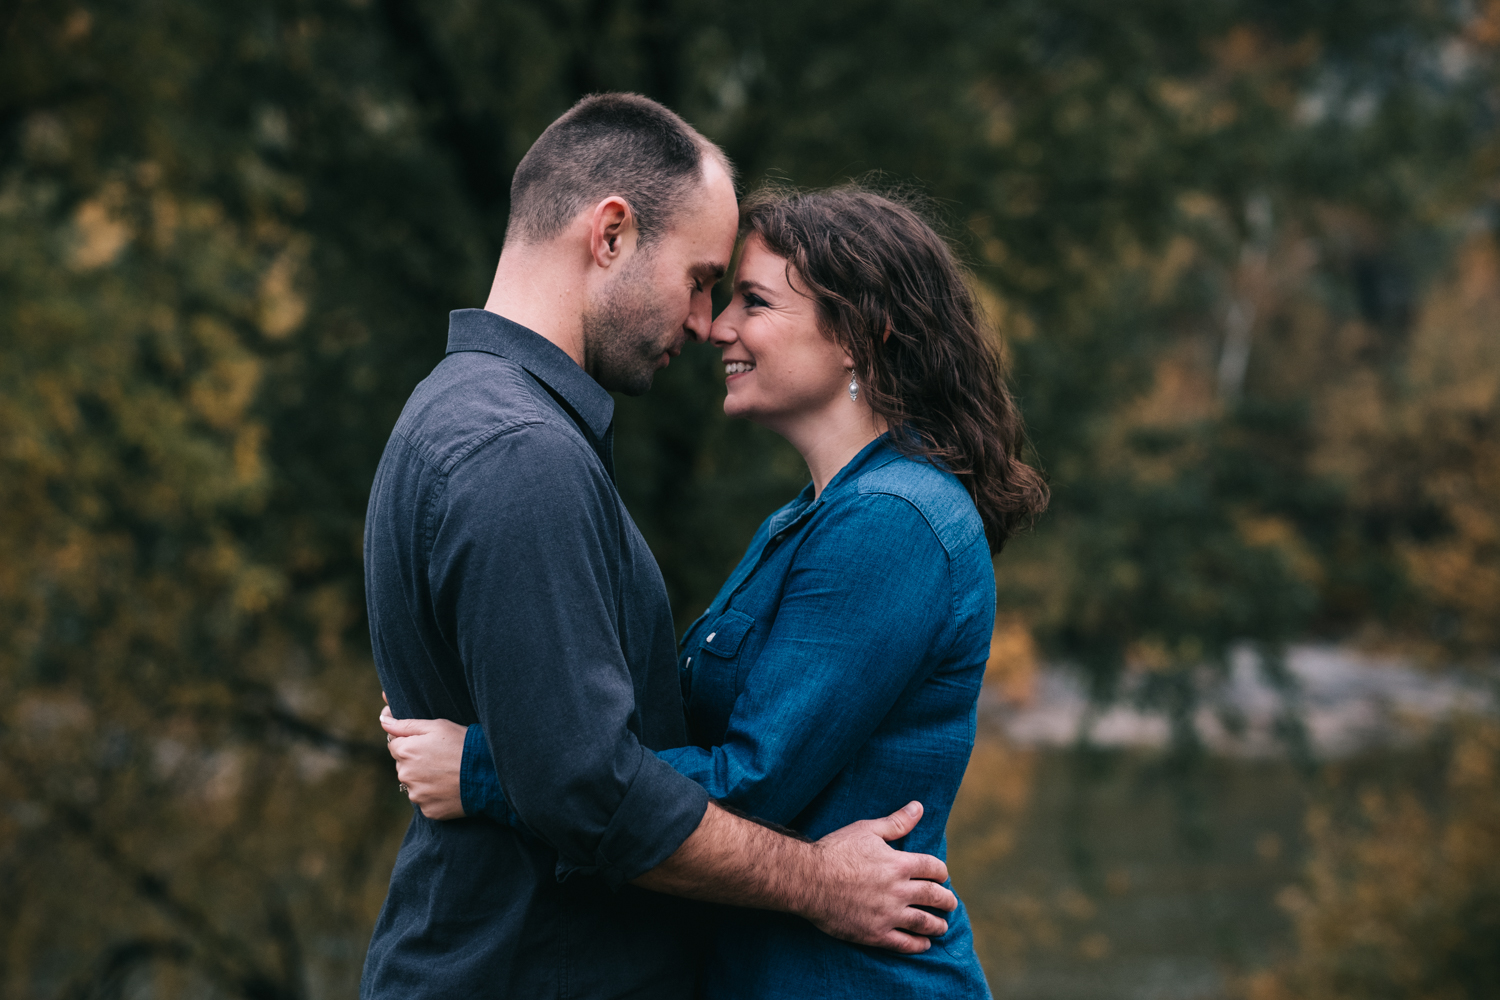 harpers ferry hiking mountain engagement session-4.jpg